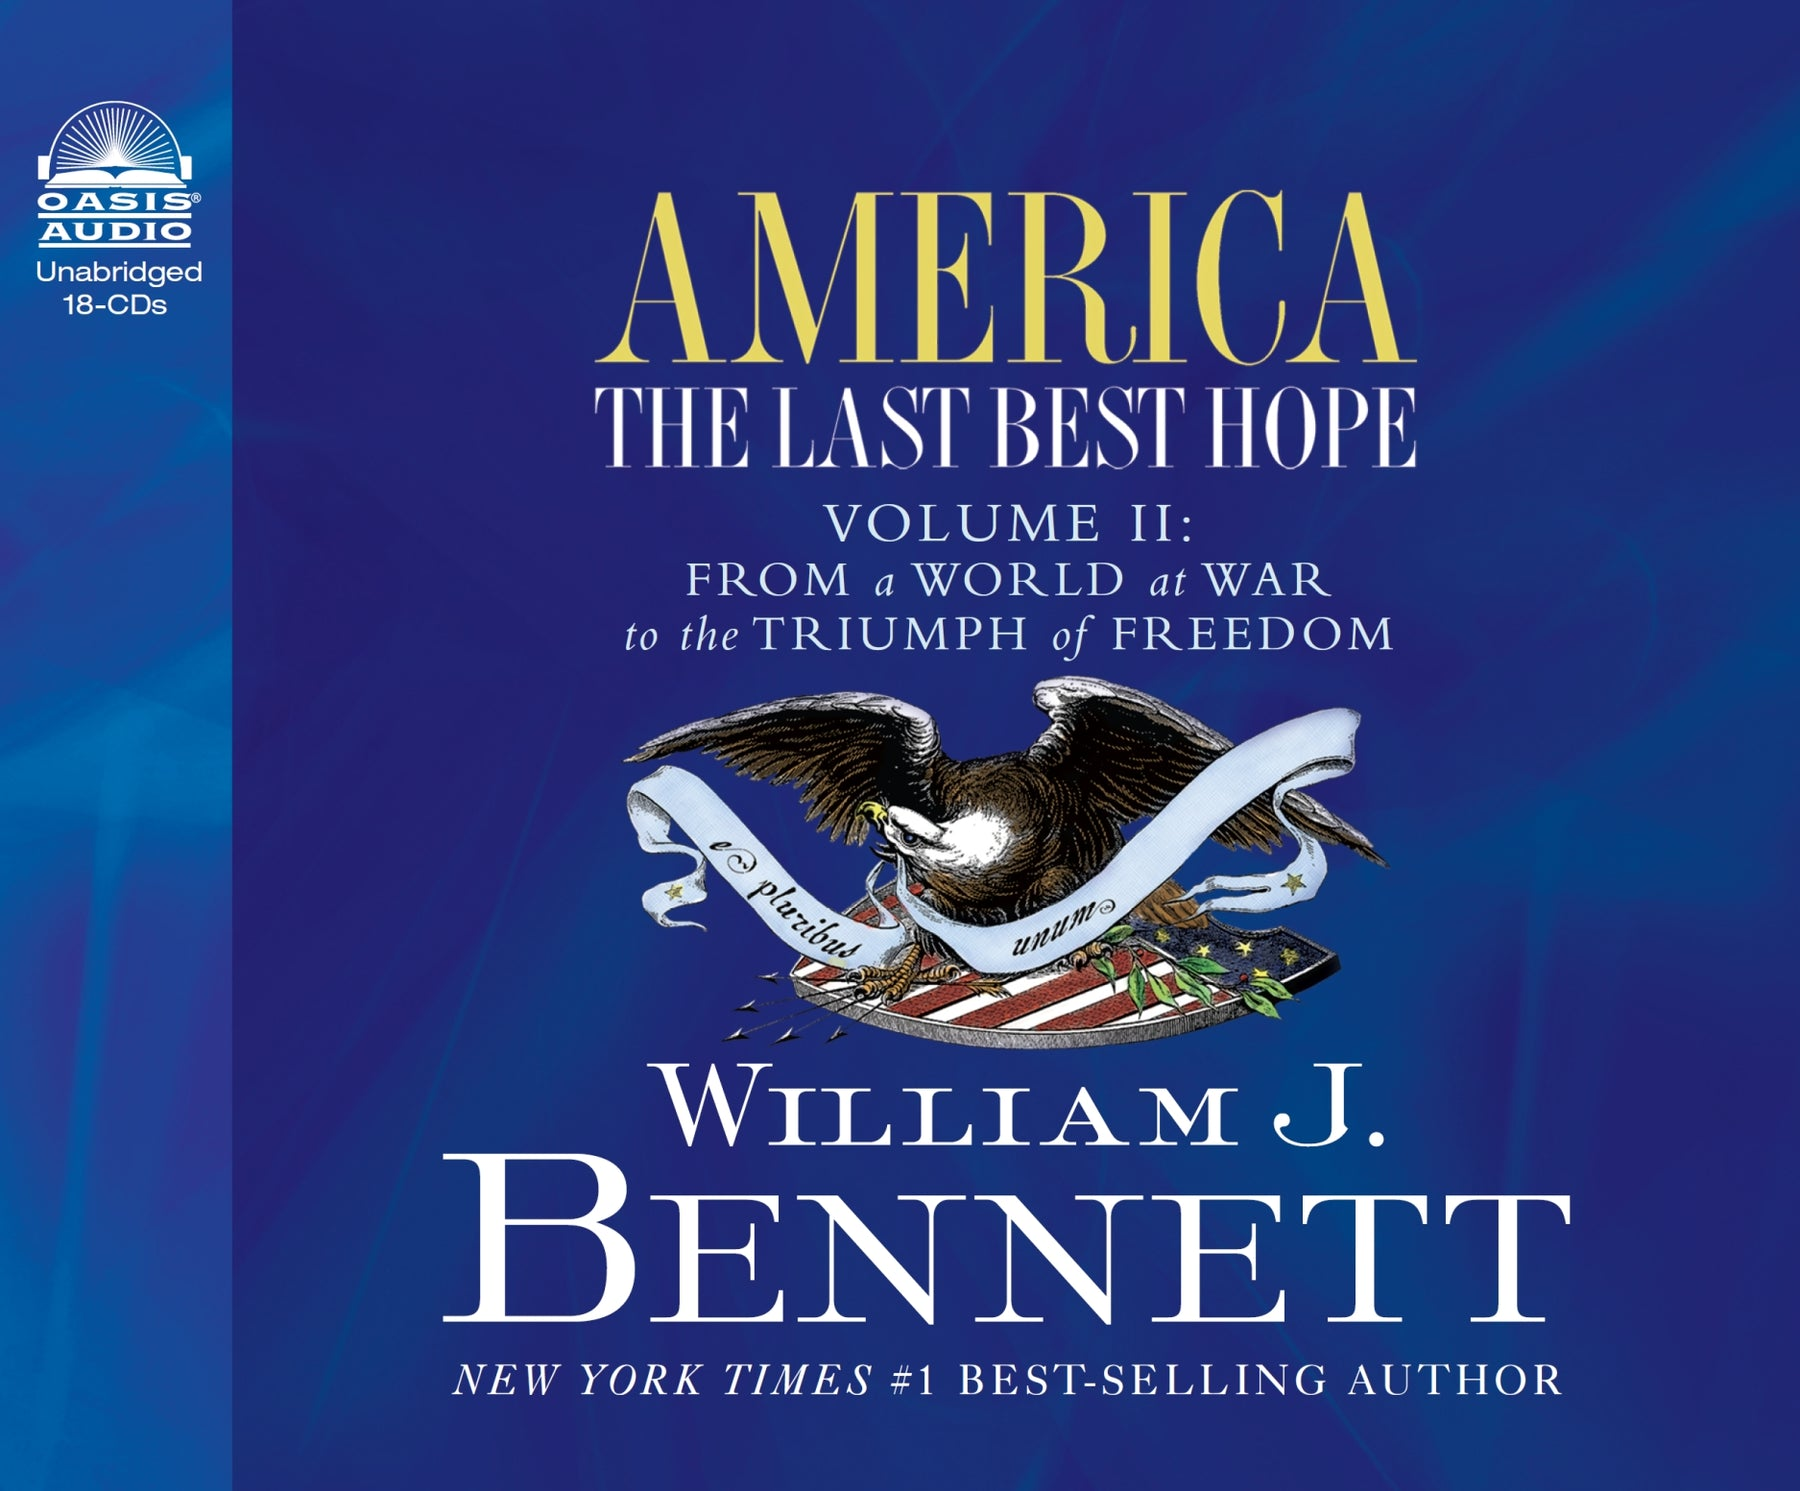 America: The Last Best Hope (Volume II) (Library Edition)